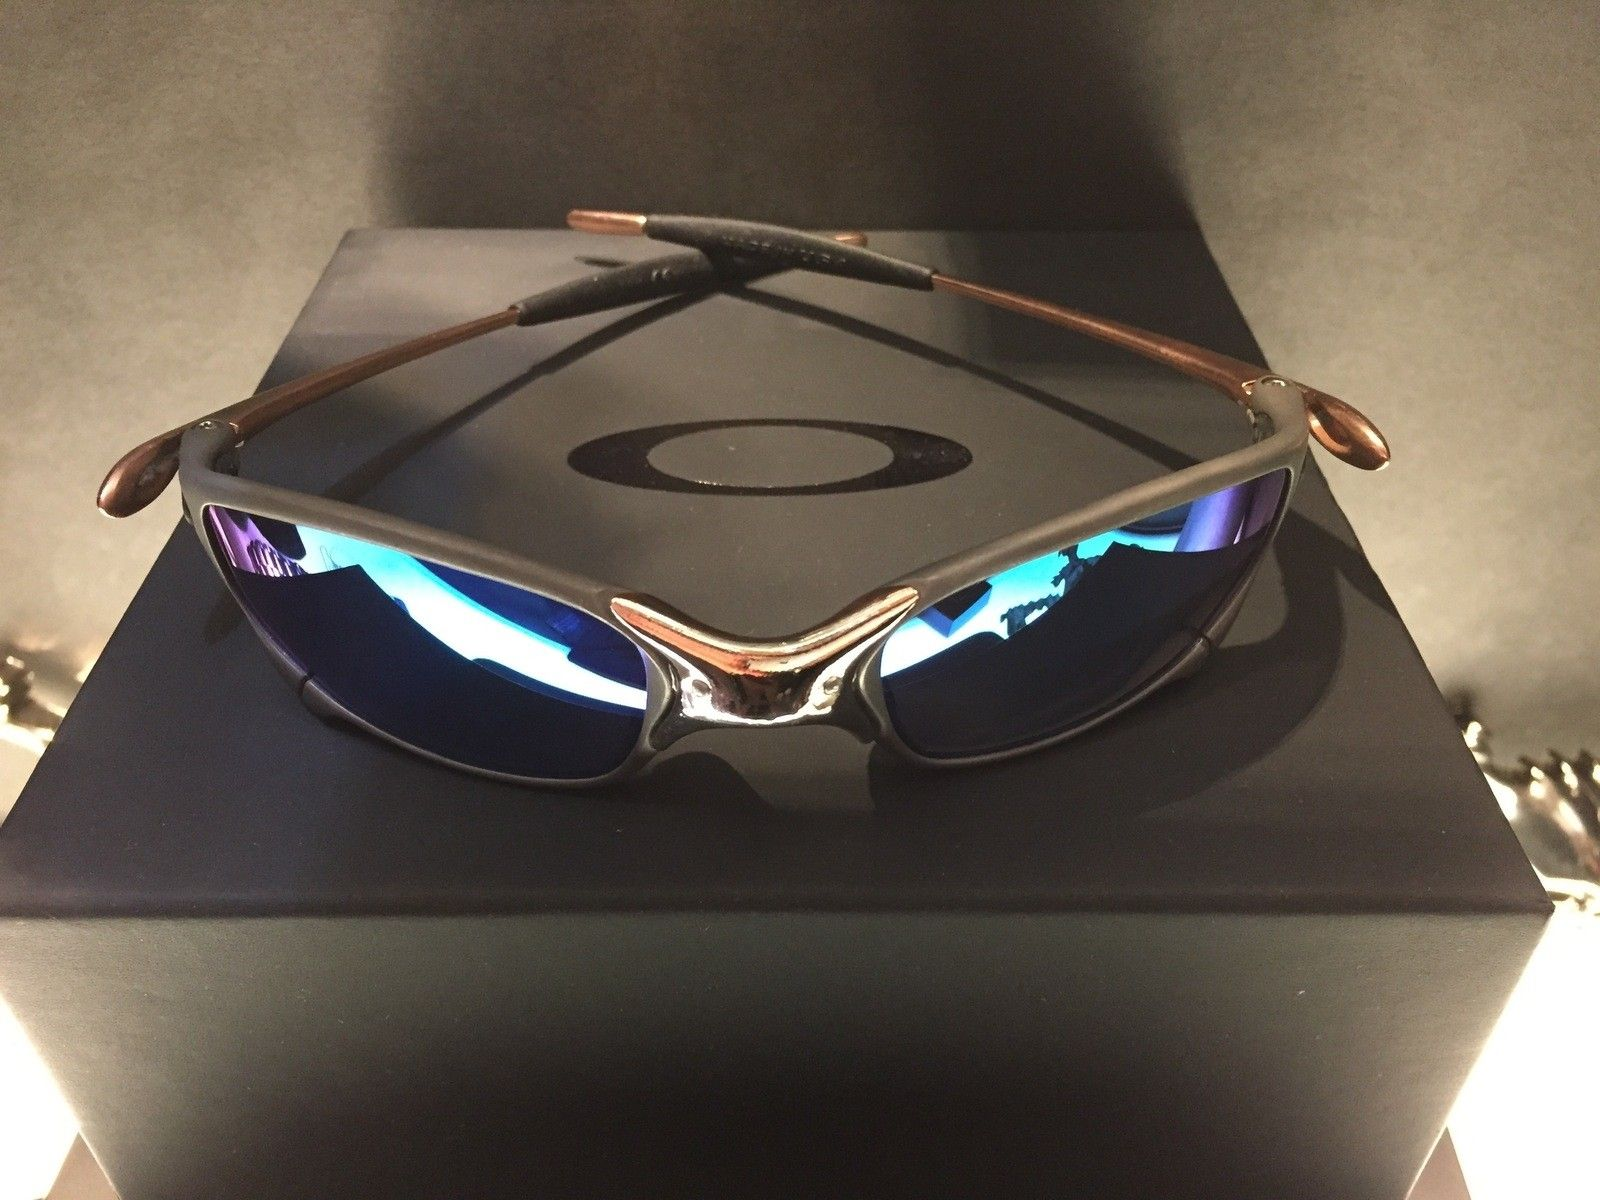 Juliet Custom Copper Plated X-Metal Ti-02 and Reverse Version with Jade and Sapphire Polarized Lens - IMG_2840.jpg